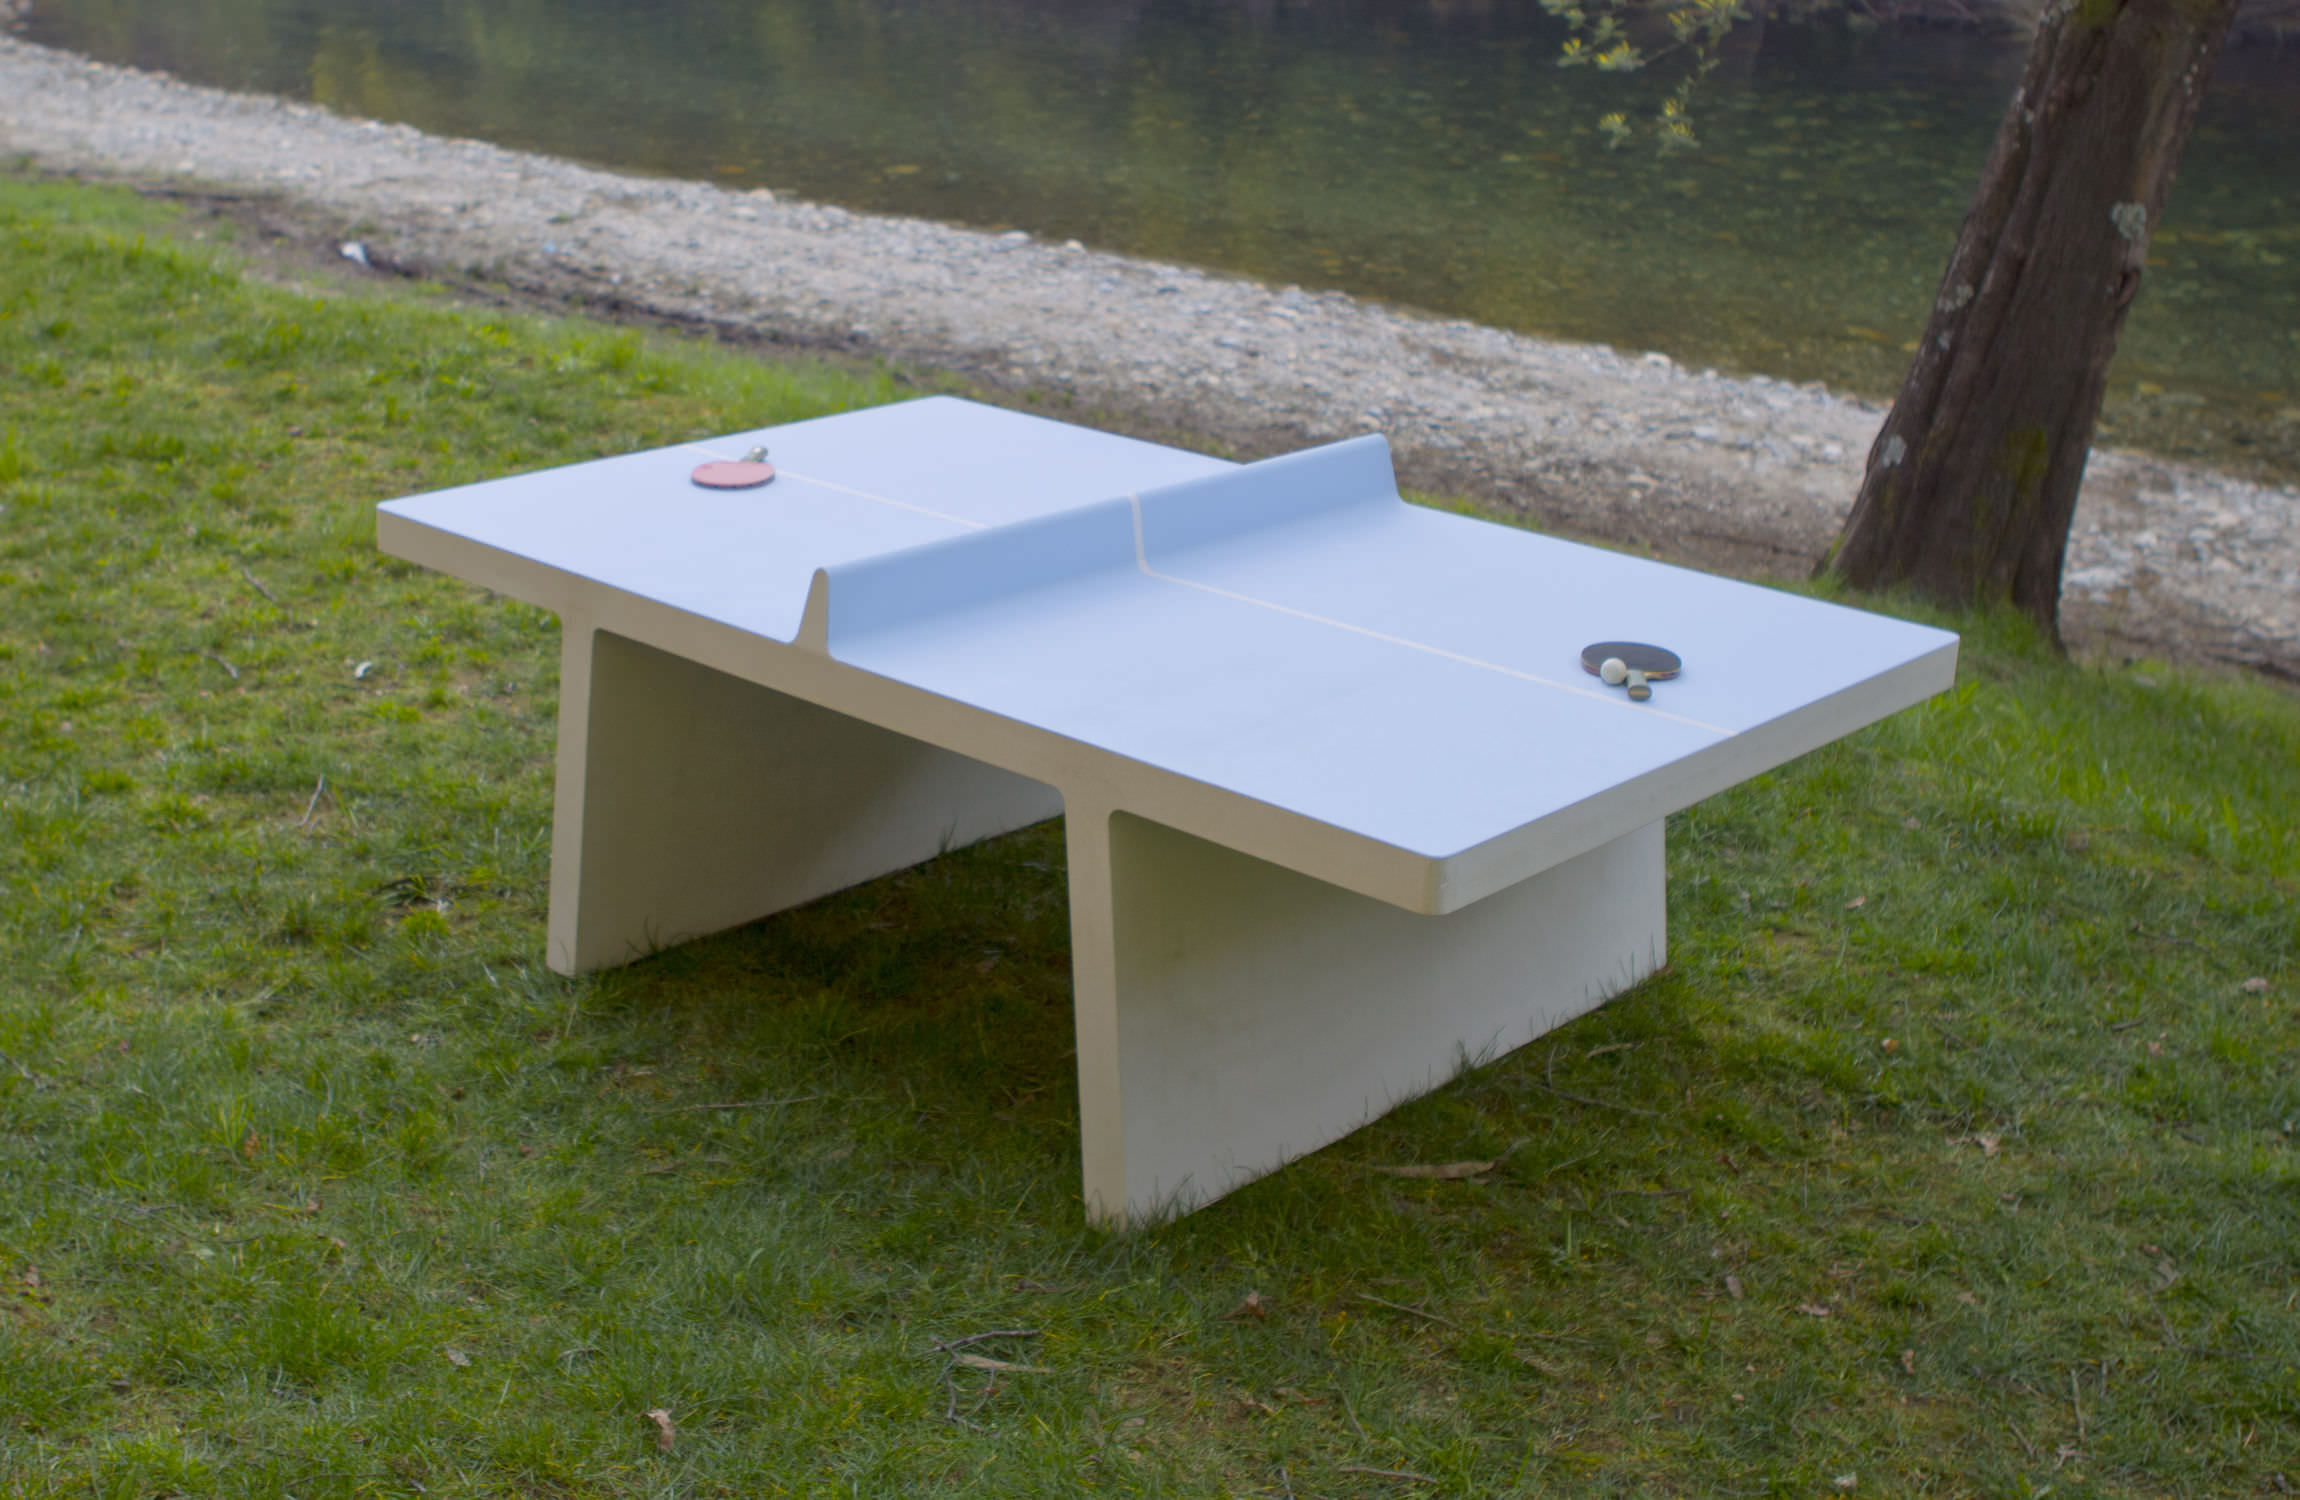 playground ping pong table - amoplay : ping-pong table by pedrita